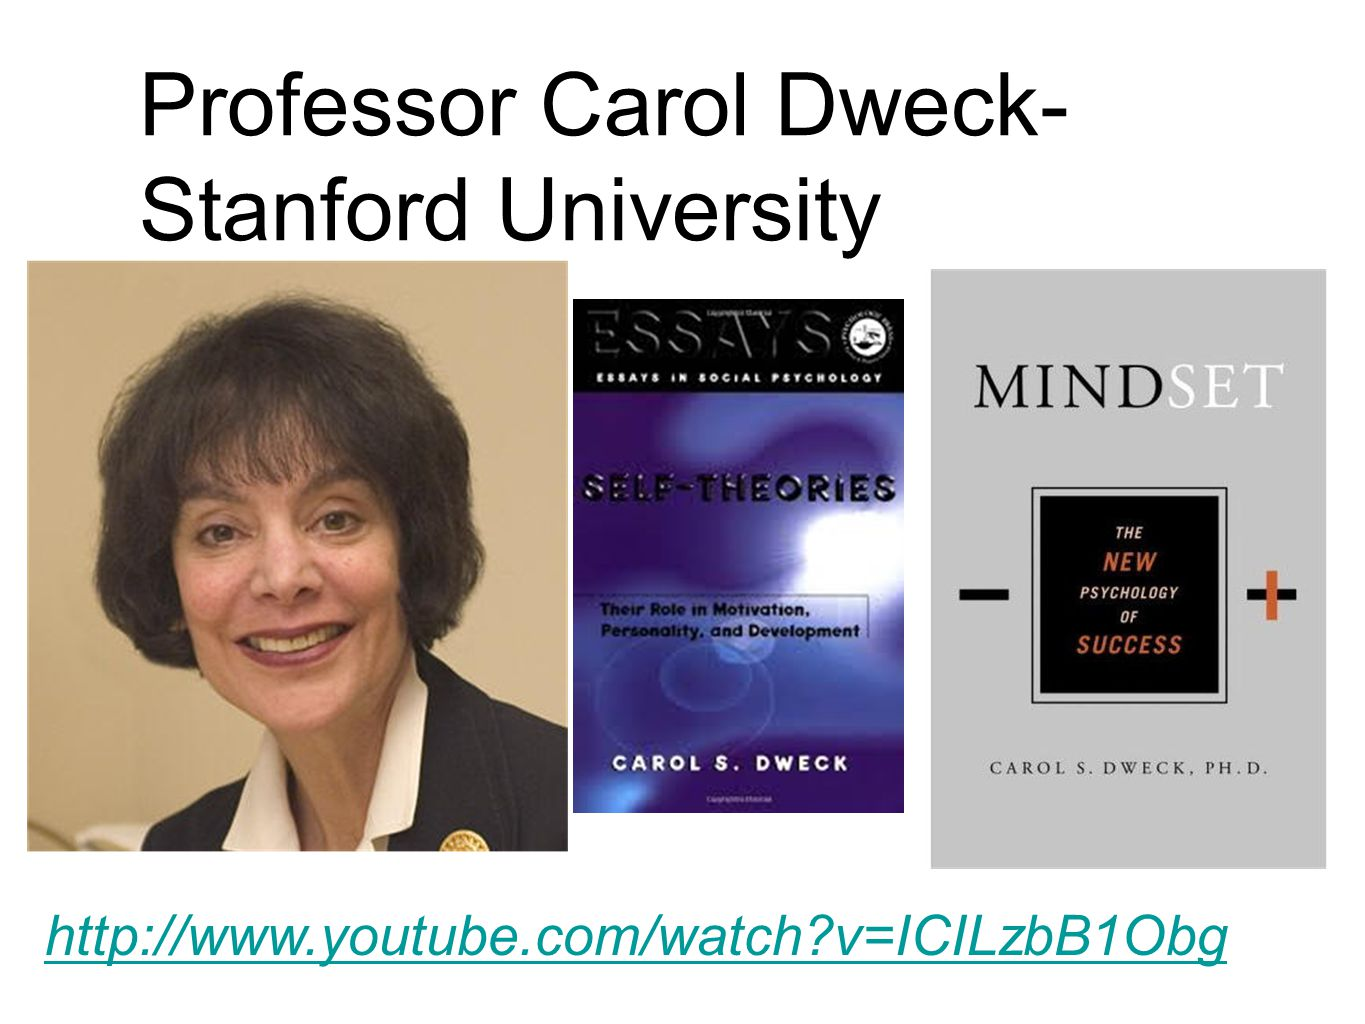 Professor Carol Dweck- Stanford University http://www.youtube.com/watch v=ICILzbB1Obg